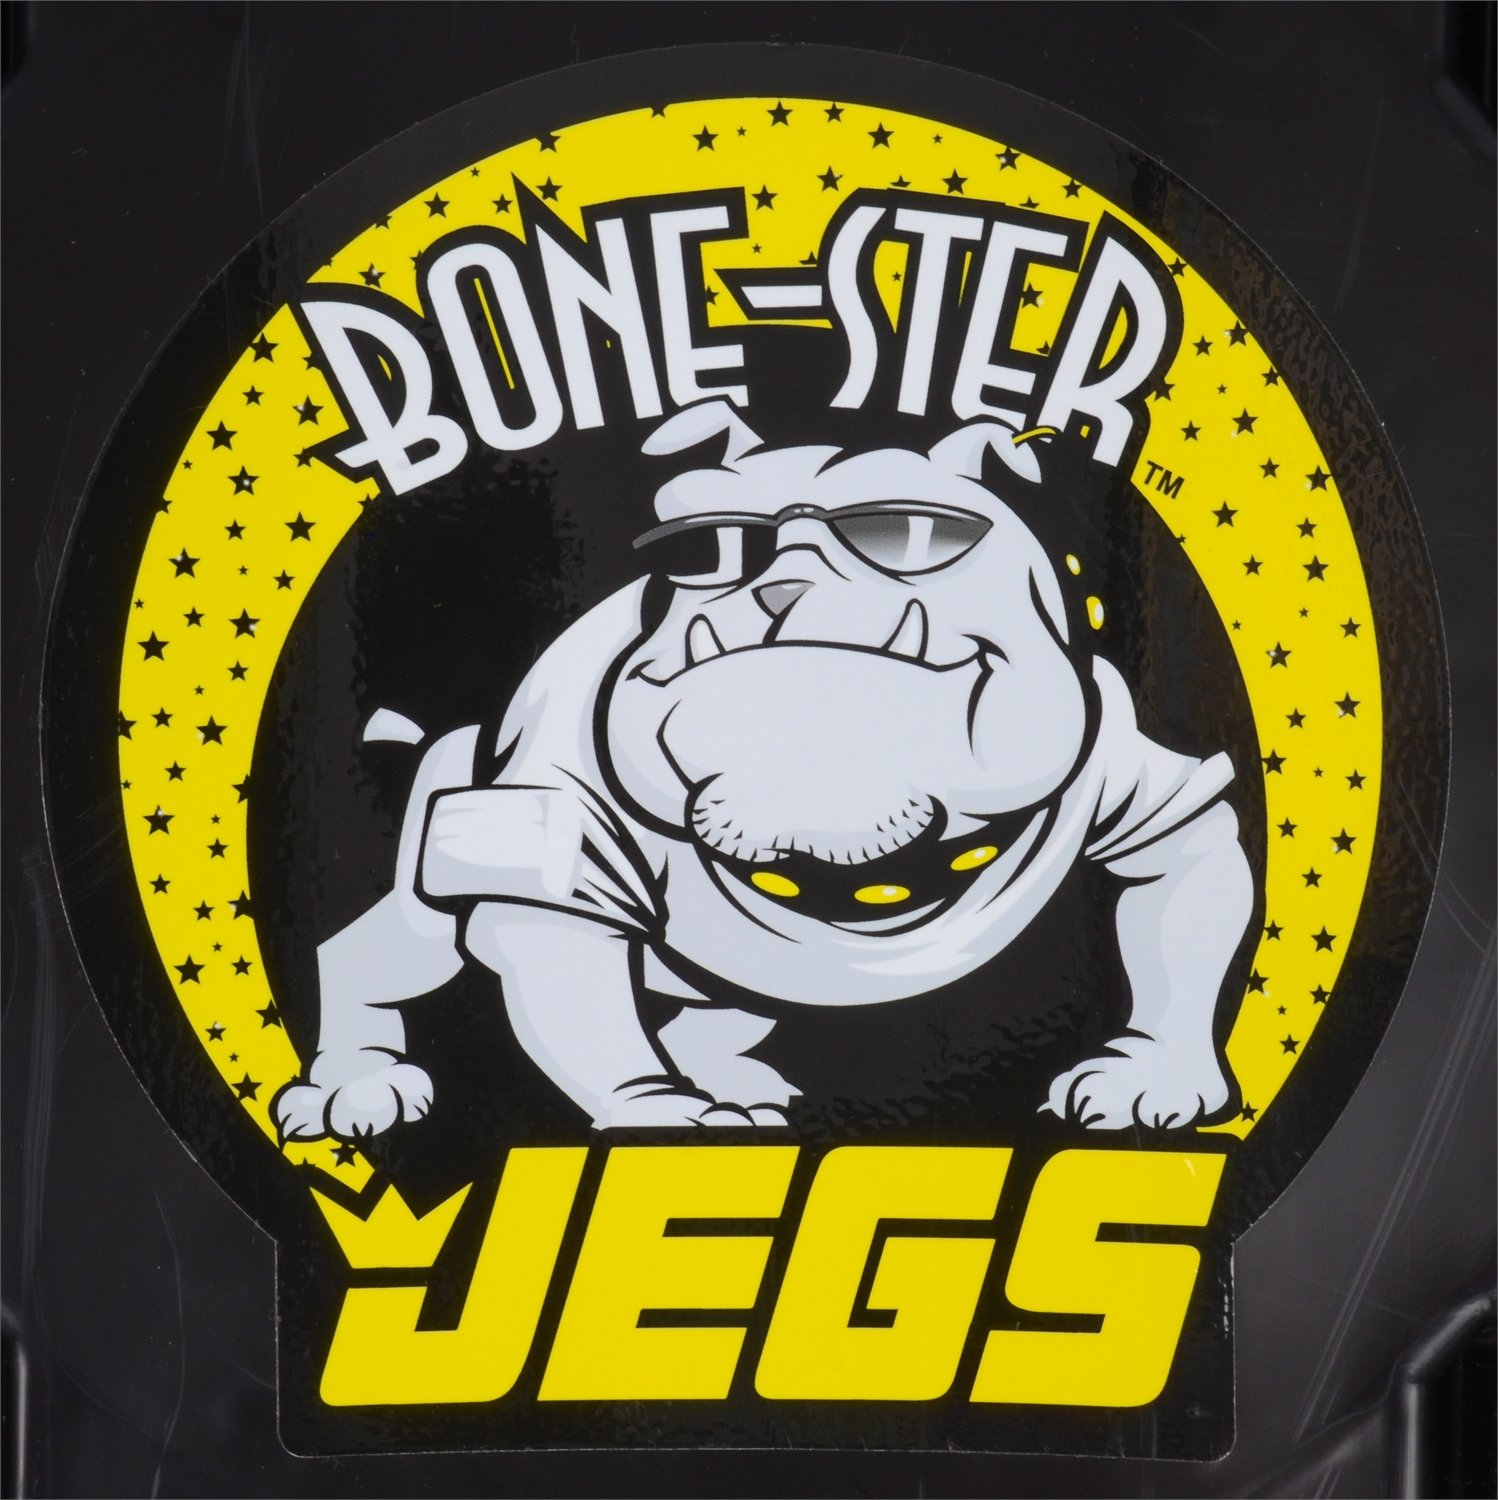 400 lbs Frame JEGS Performance Products 81163 JEGS Bone-ster Creeper Capacity